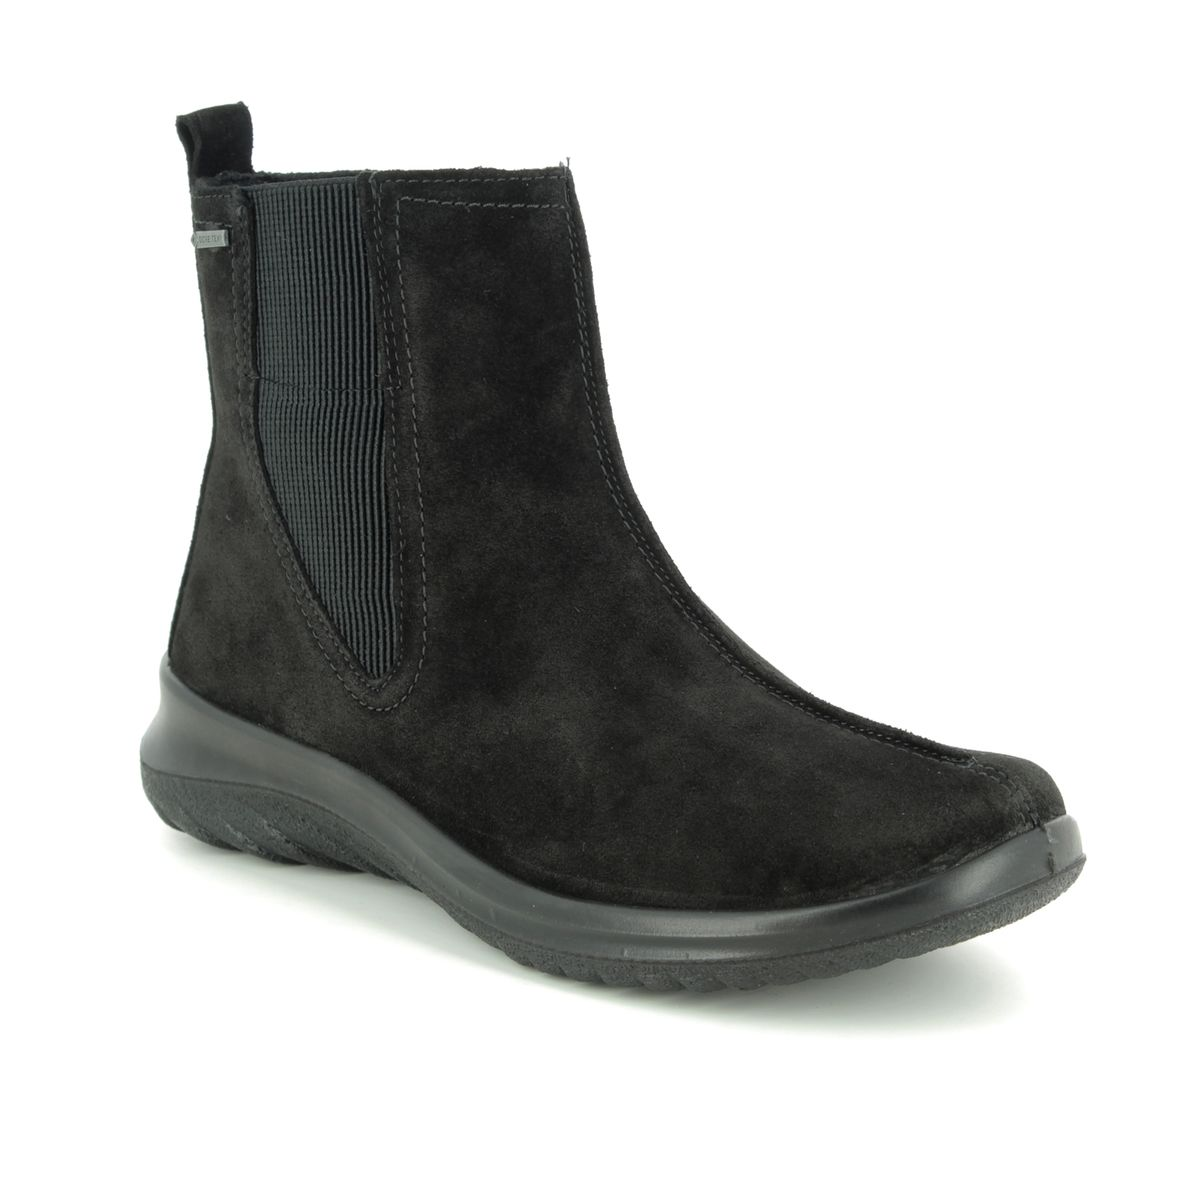 reputable site release info on huge discount 09571/00 Soft Chelsea Gtx at Begg Shoes & Bags